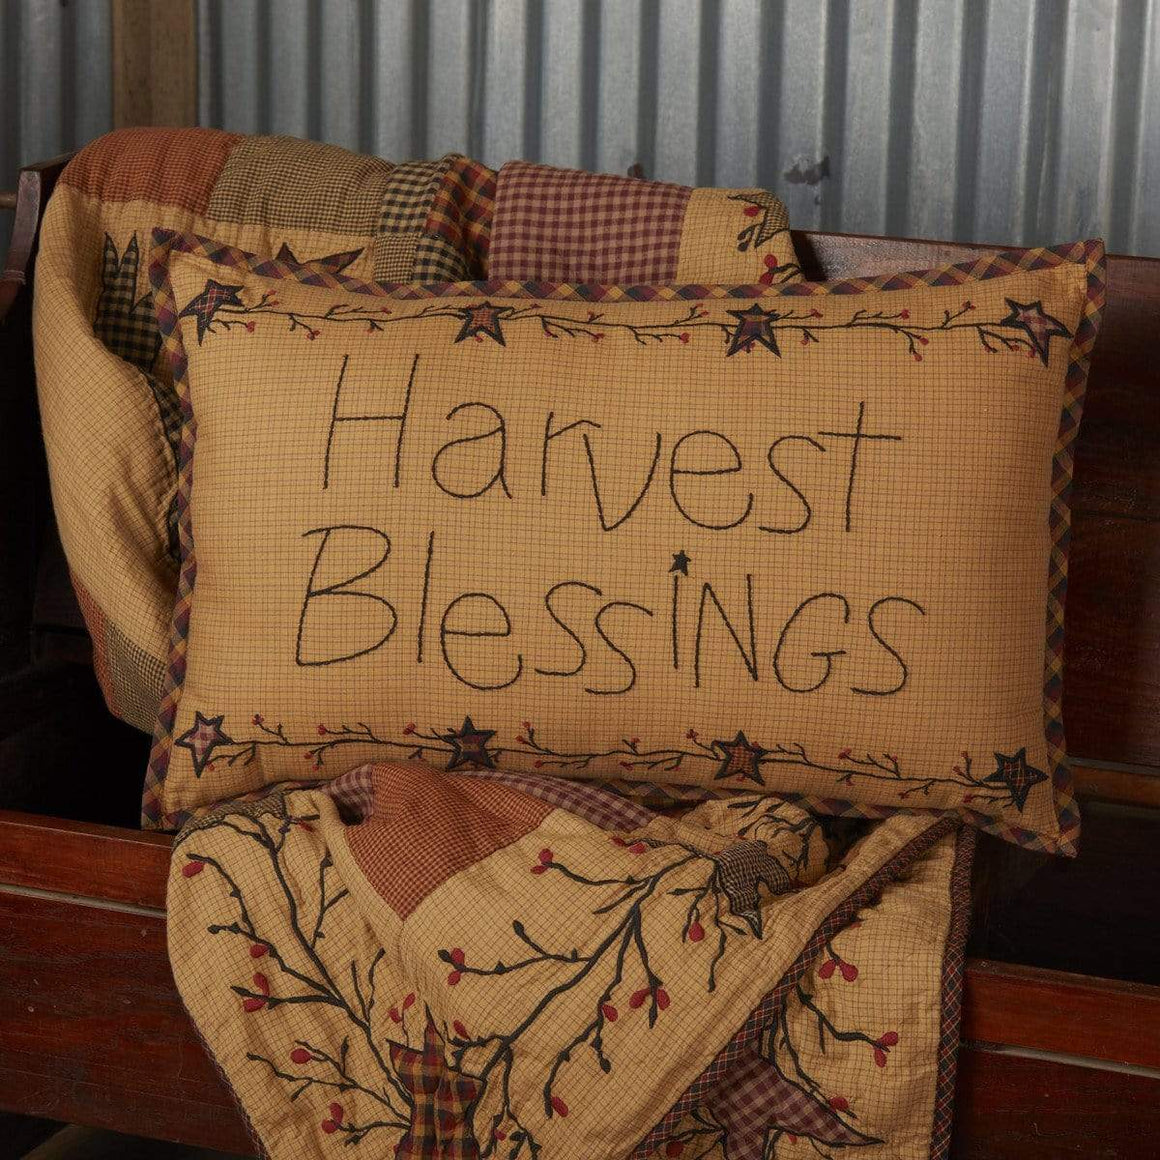 Heritage Farms Harvest Blessings Pillow